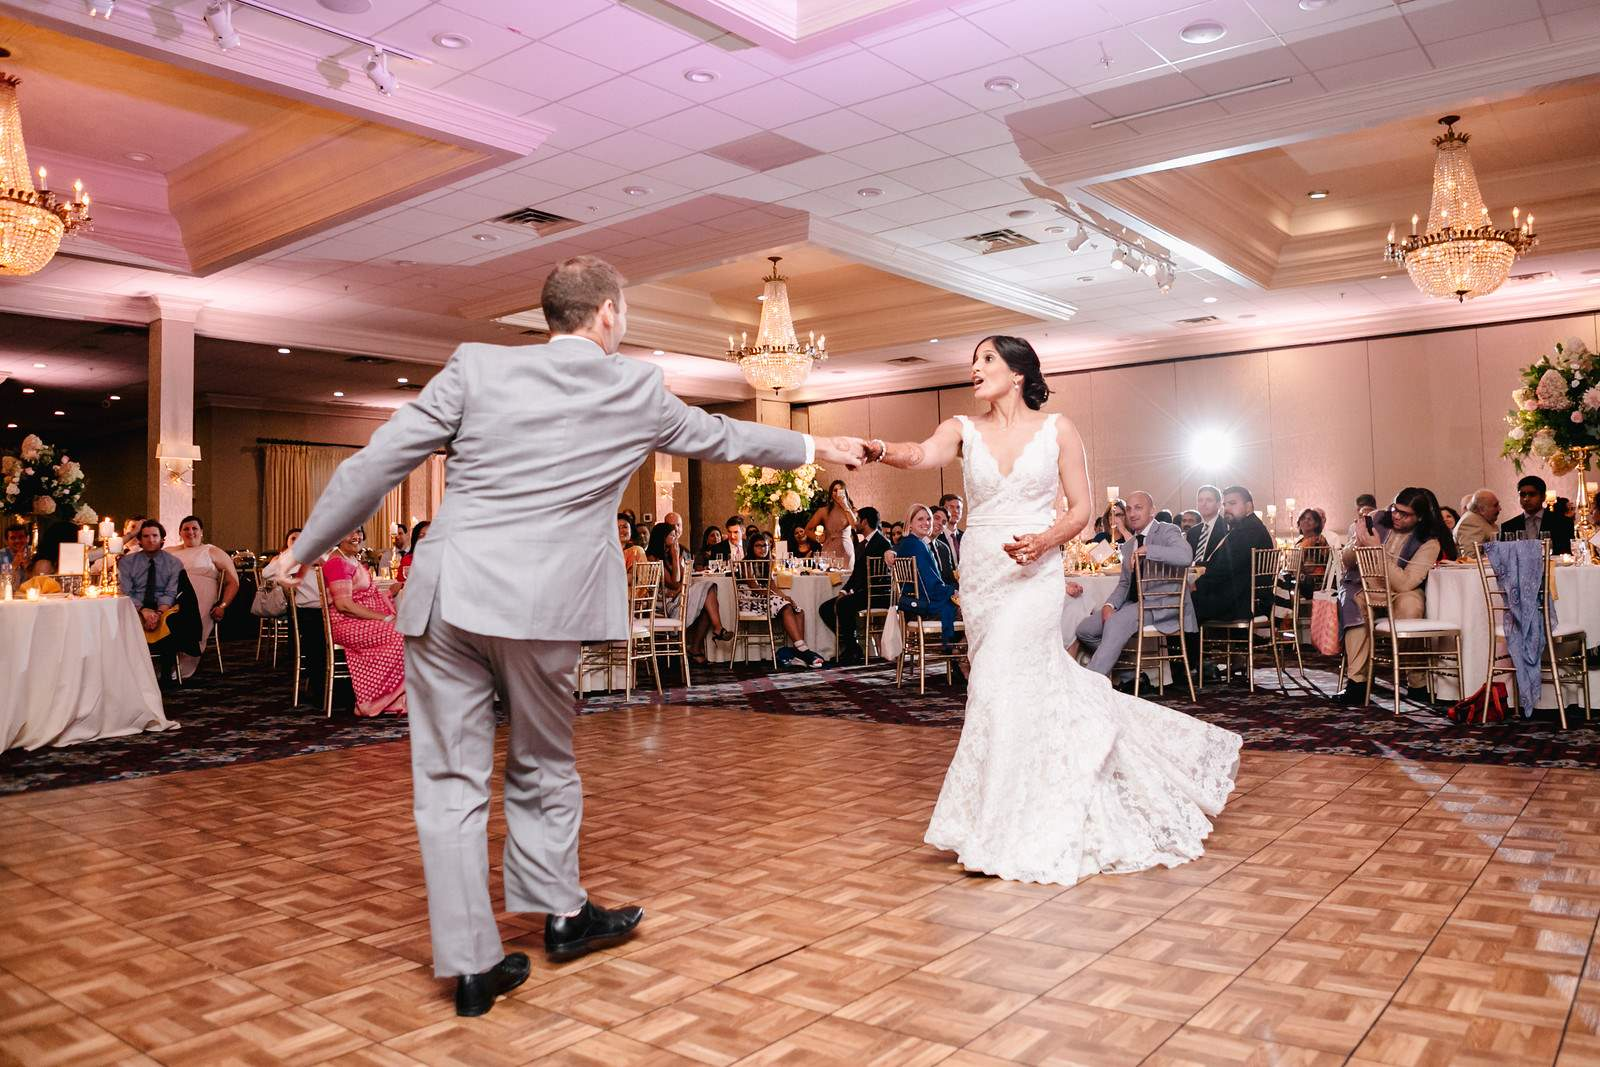 Renu_Joey_dancing_in_Ballroom_color_photo